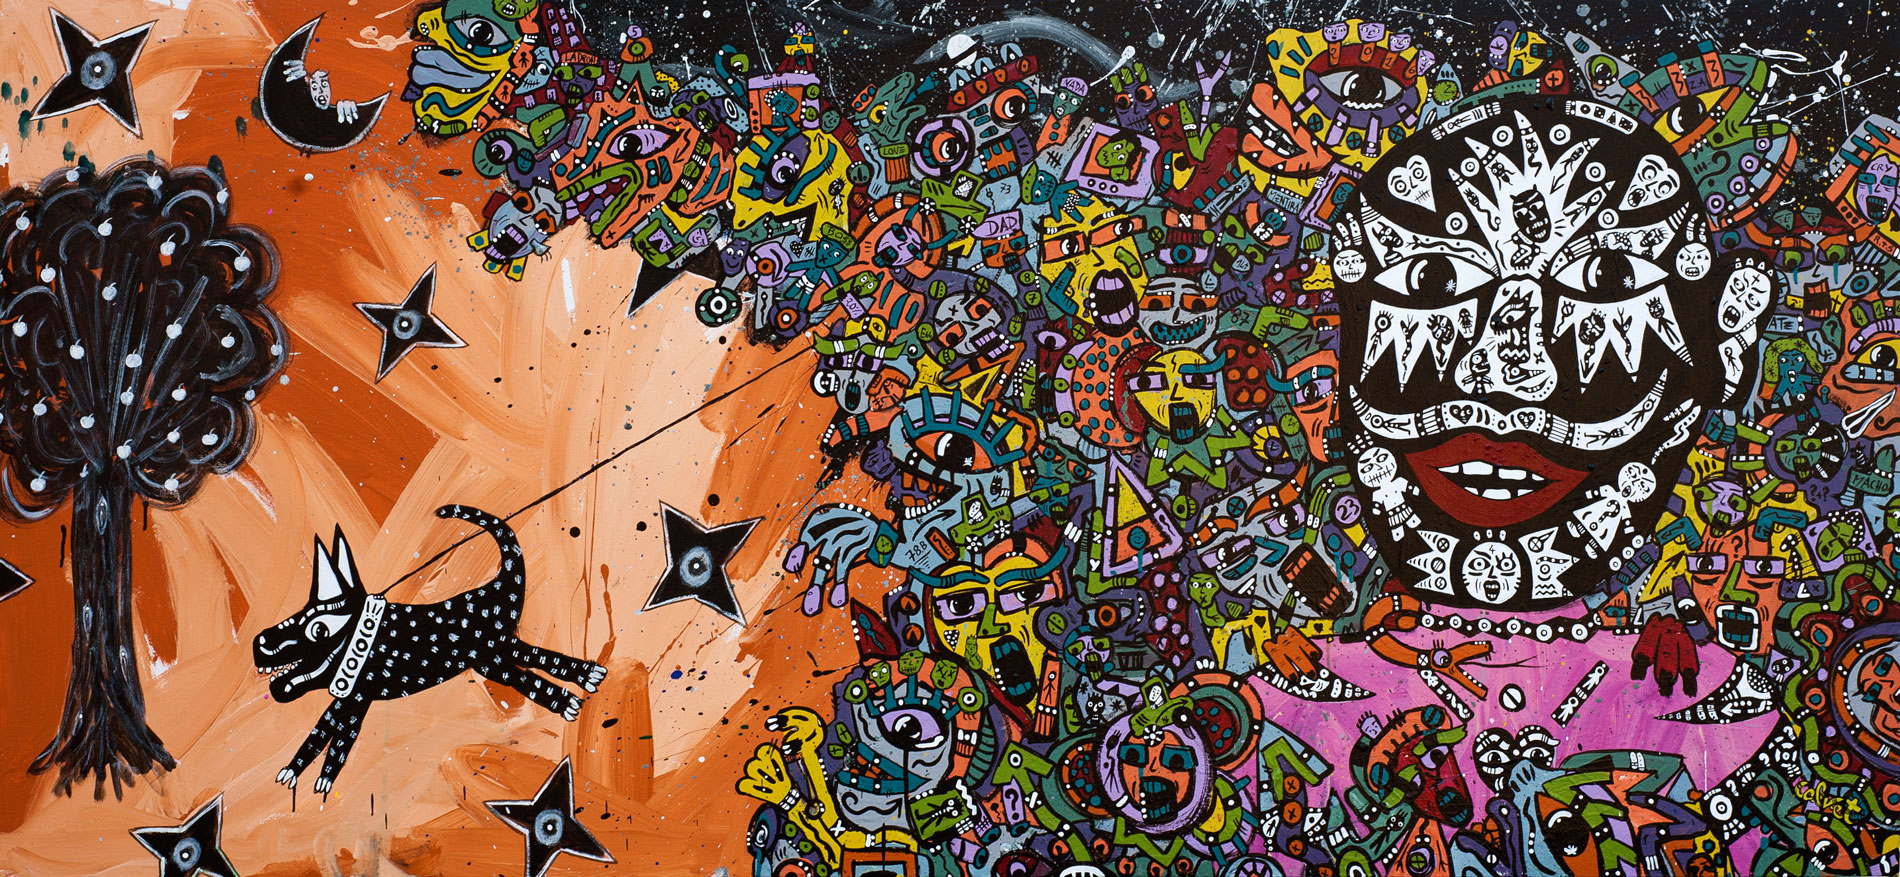 Jean-Marc Calvet, The Leash, 83cm x 180cm, acrylic on canvas